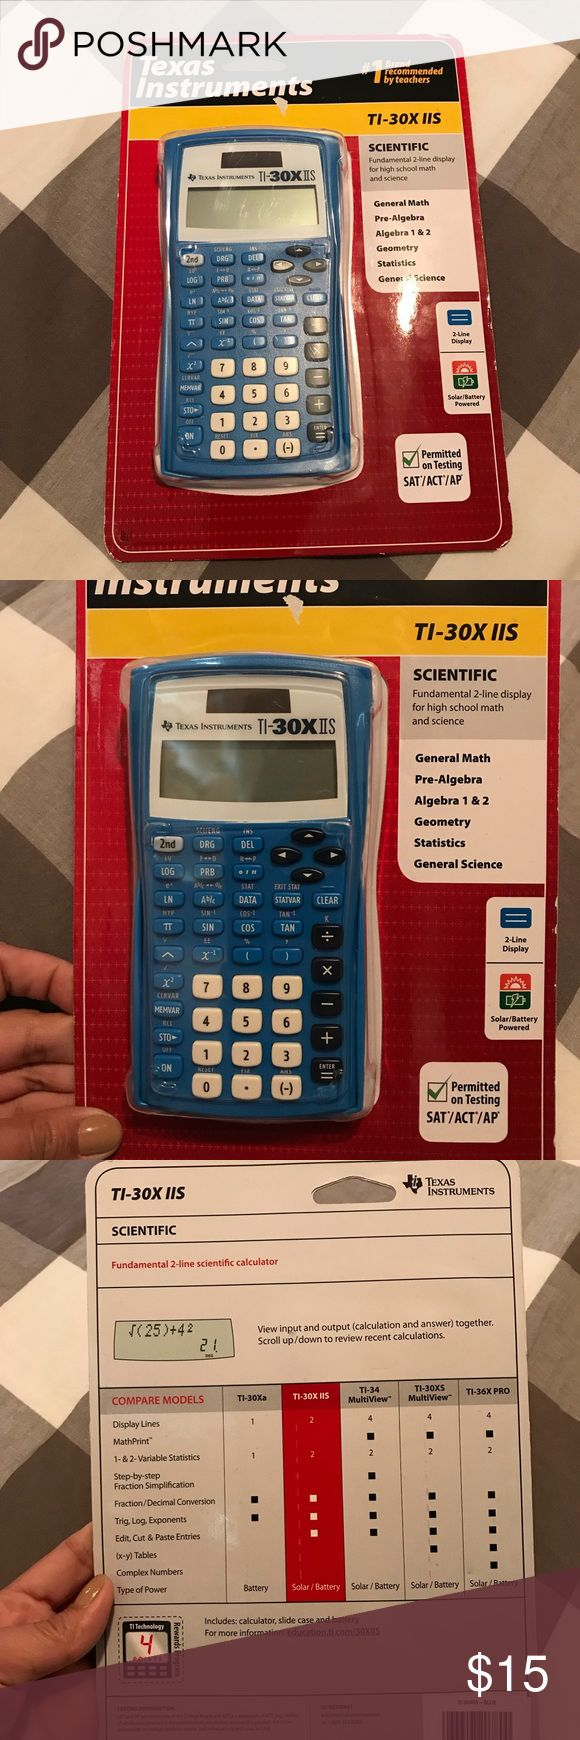 Texas Instruments Calculator Brand New Texas Instruments . #1 Brand recommended by teachers. Color is blue. Great for General Math, Pre-Algebra and Algebra 1&2, Geometry, statistic and General science.. solar/battery powered. Texas Instruments Other